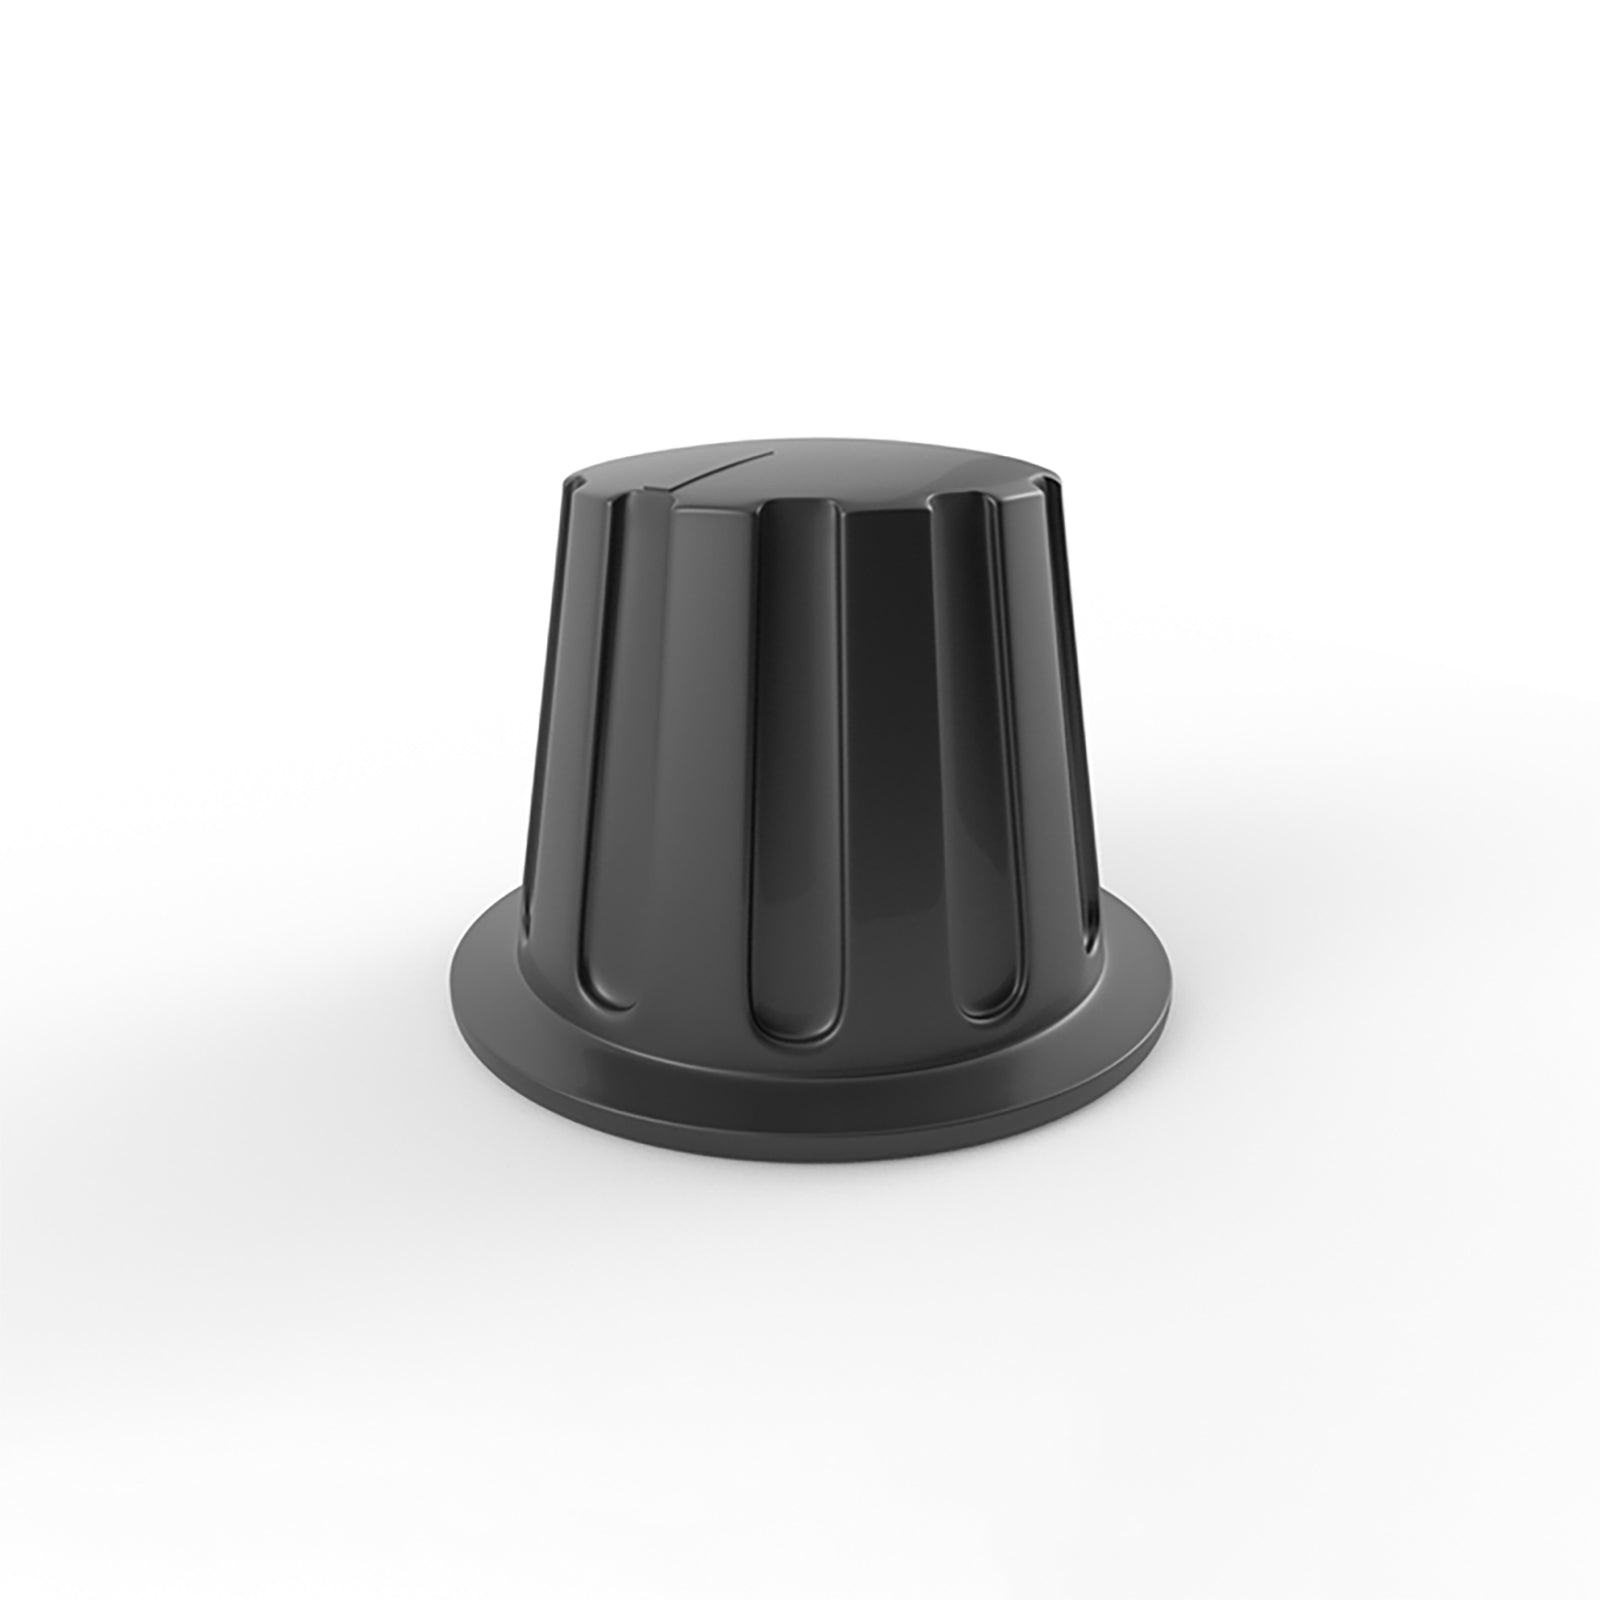 Standart amplifier ribbed audio knob 3d model